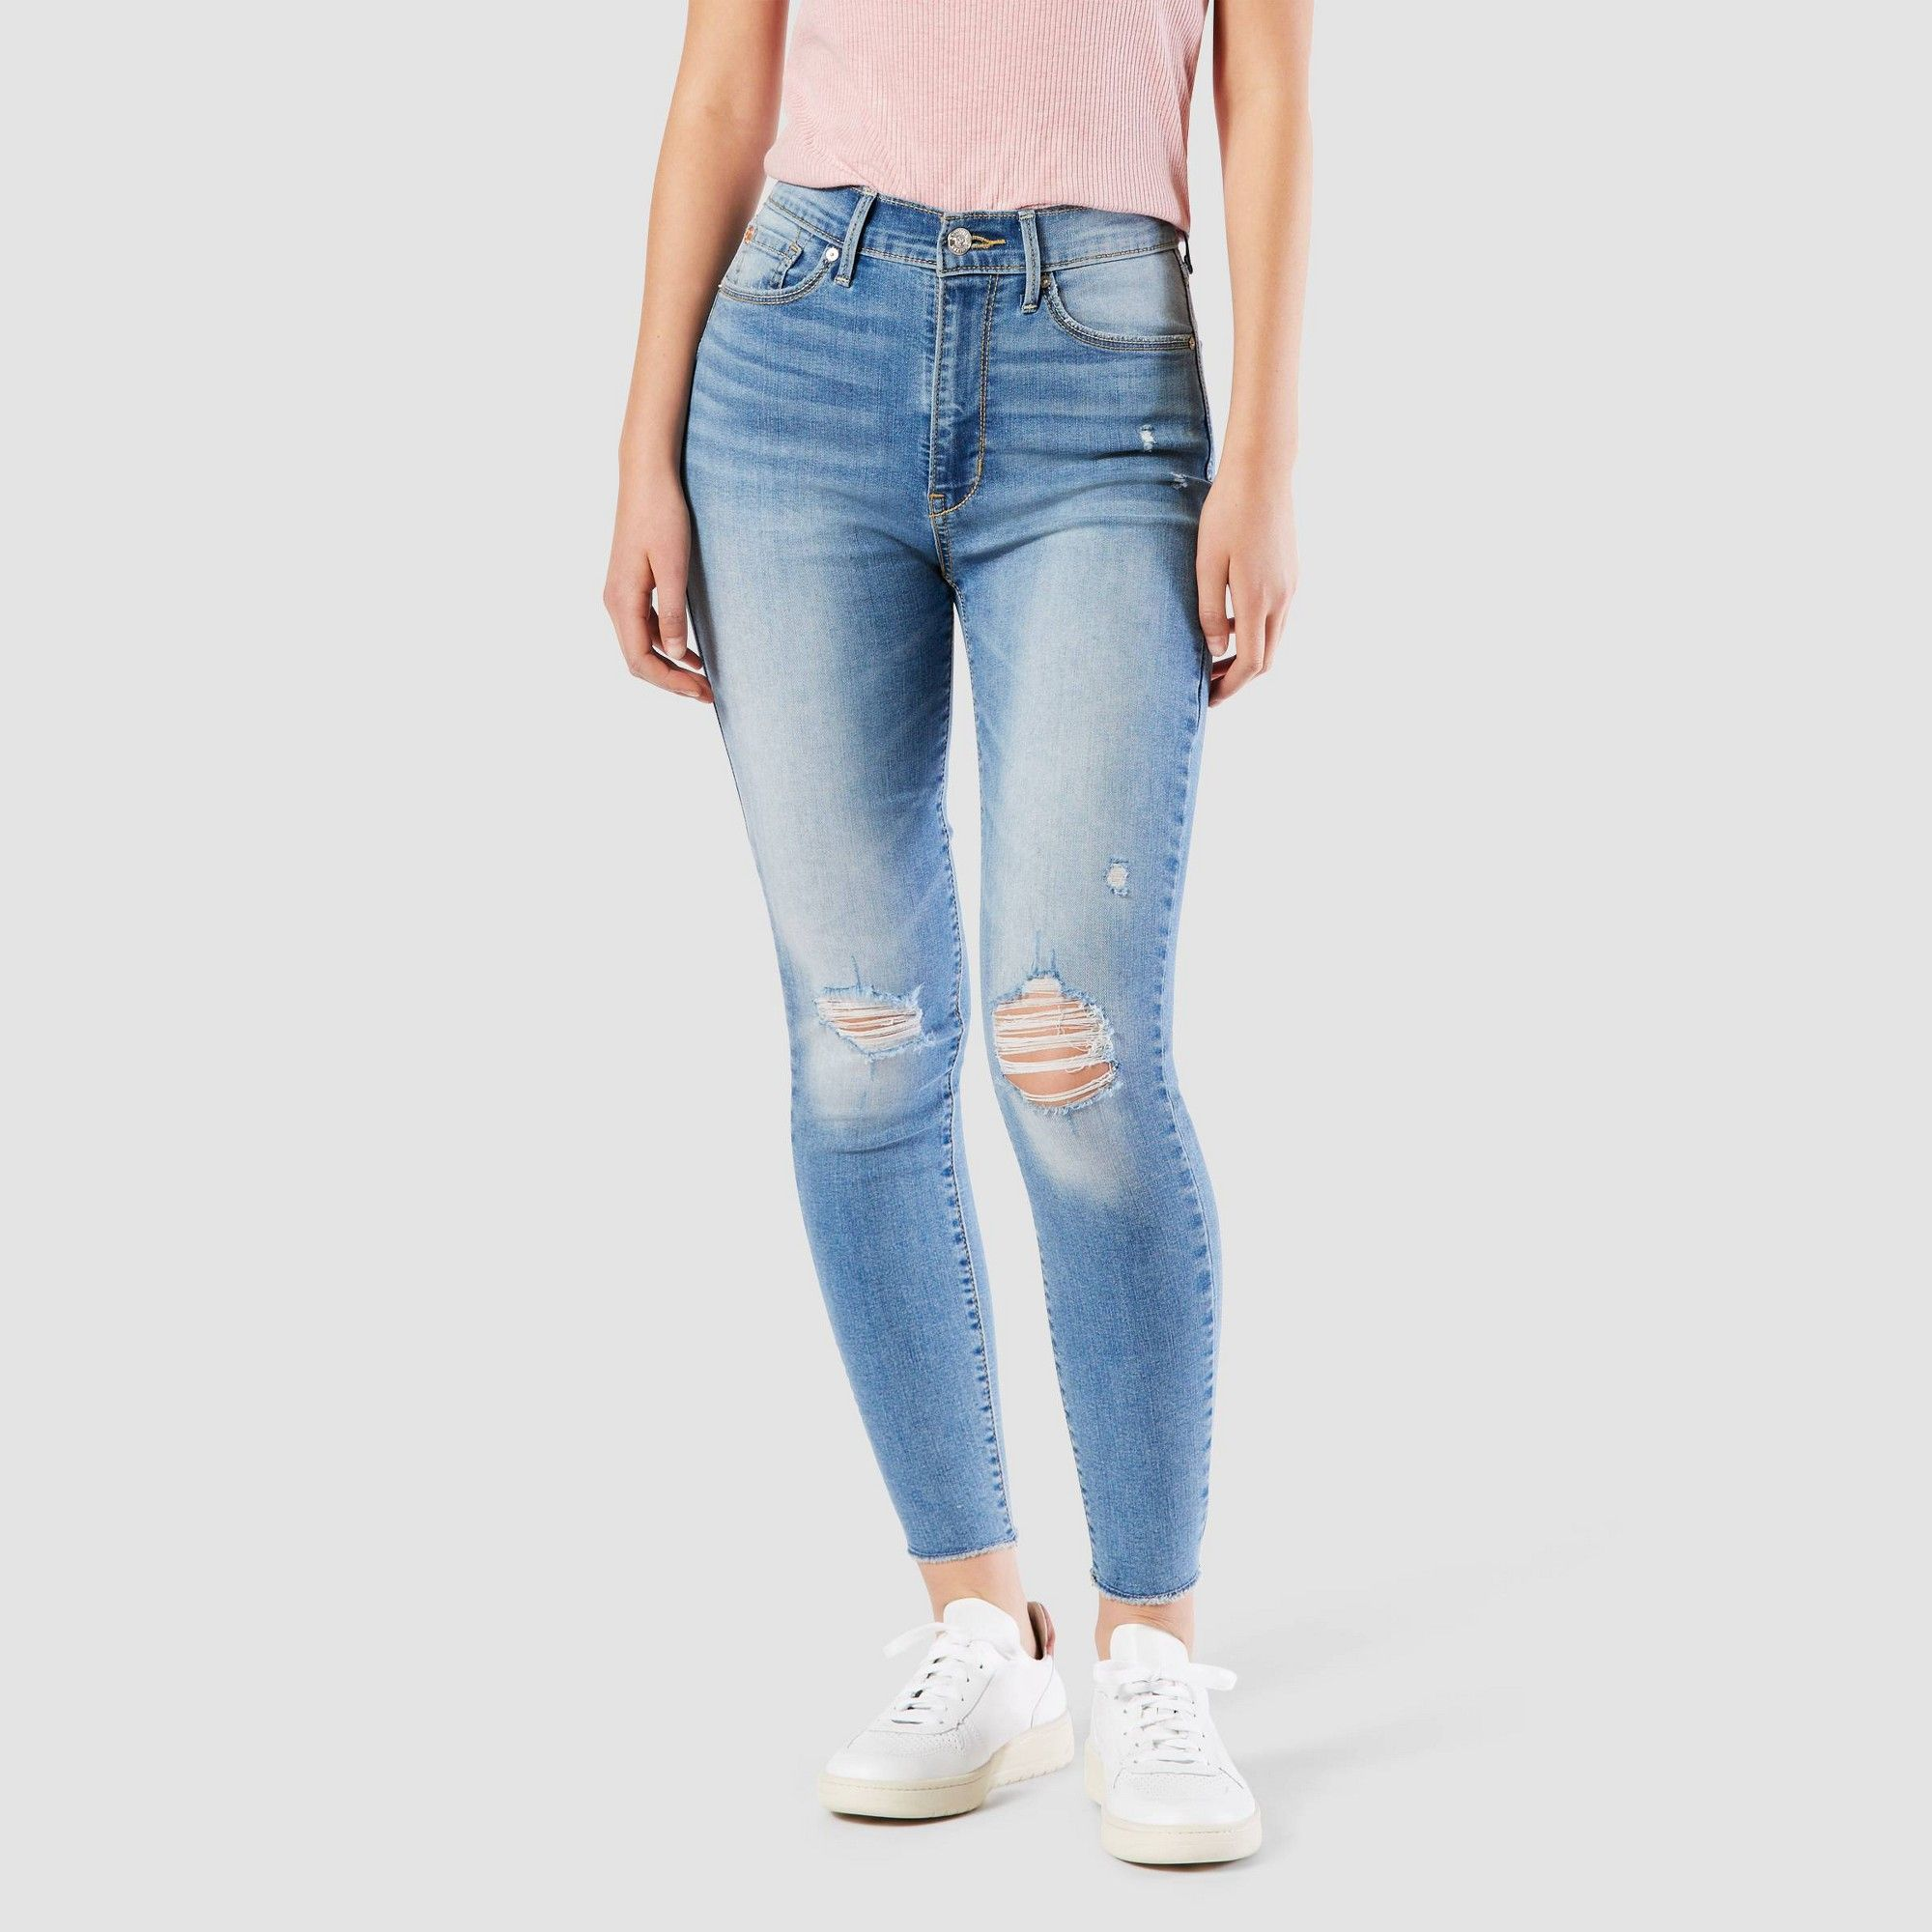 2020 New Women Jeans Petite Cargo Trousers White Tapered Trousers Bike Shorts Outfit Chic Clothing